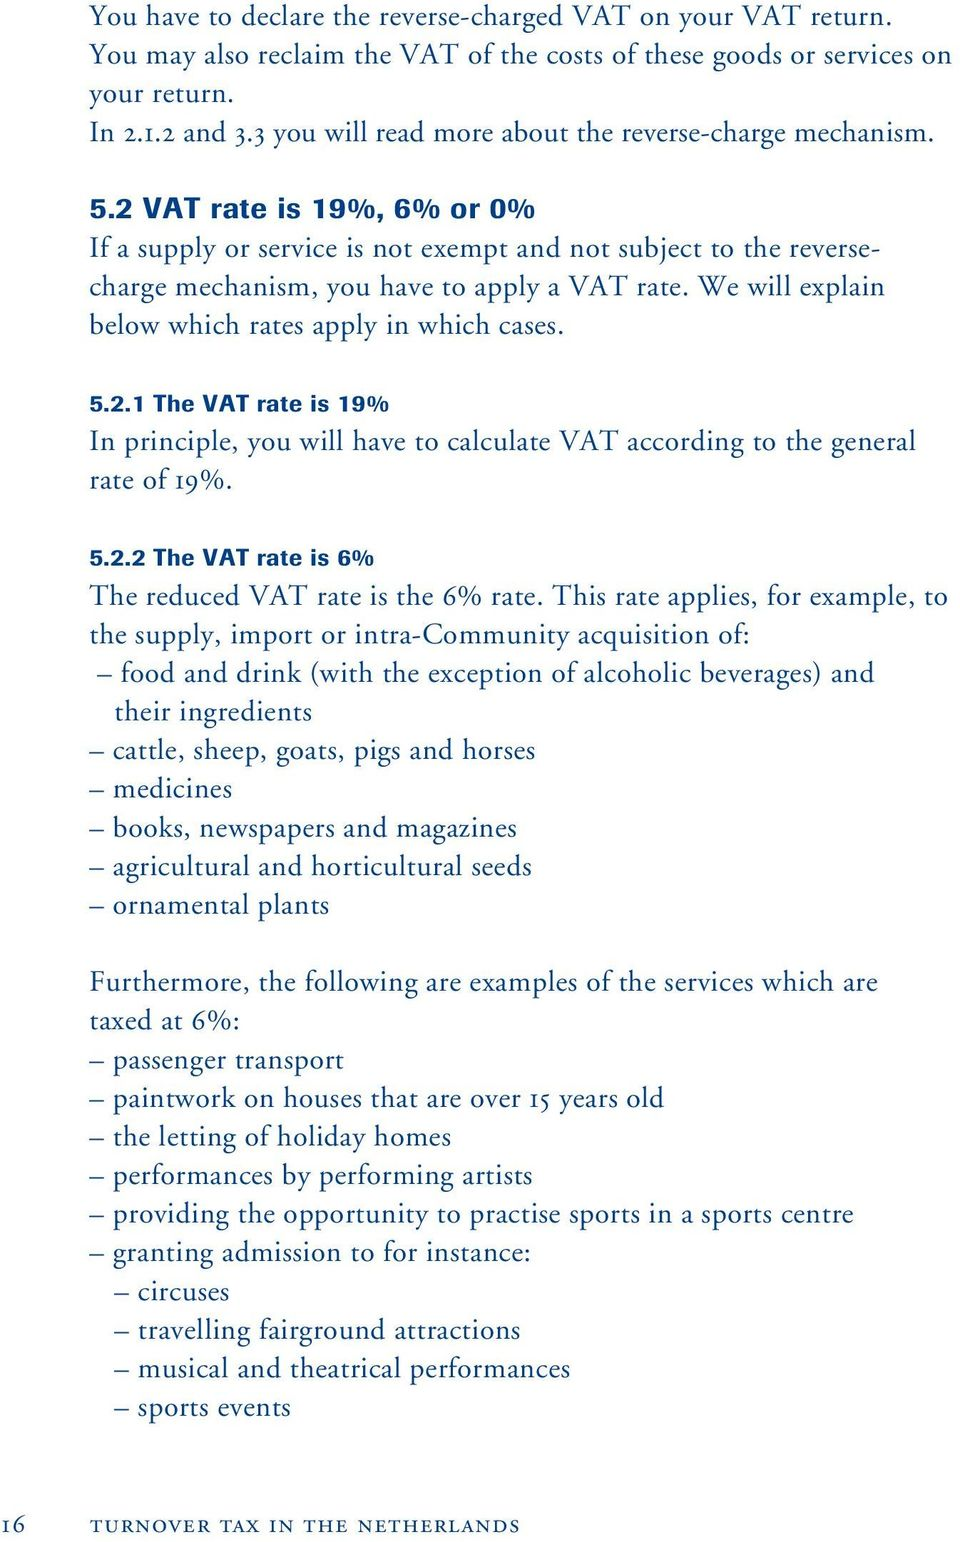 2 VAT rate is 19%, 6% or 0% If a supply or service is not exempt and not subject to the reversecharge mechanism, you have to apply a VAT rate. We will explain below which rates apply in which cases.